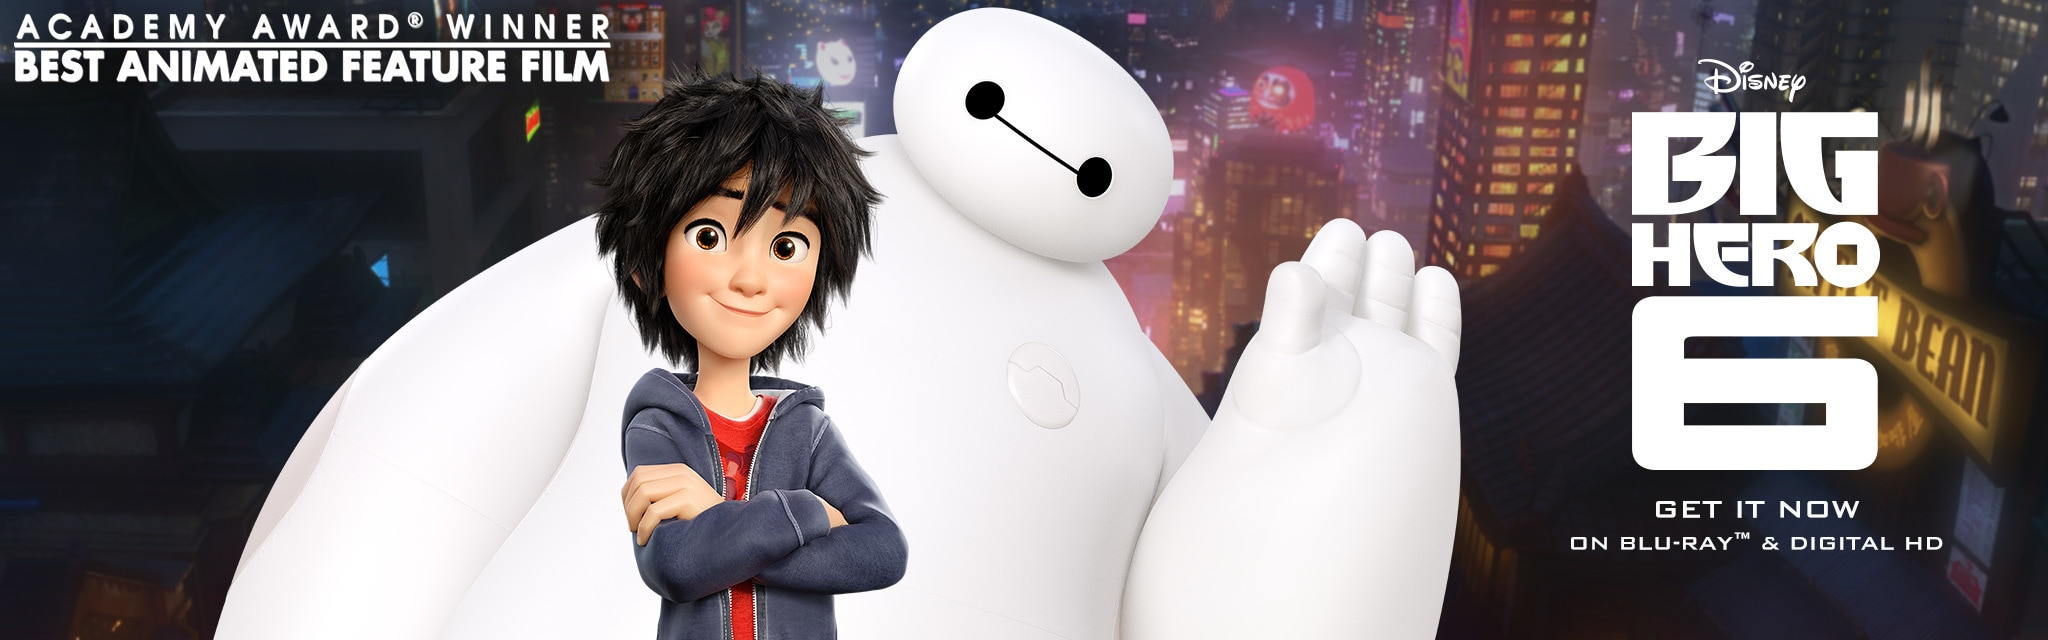 Big Hero 6 Official Website Disney Movies